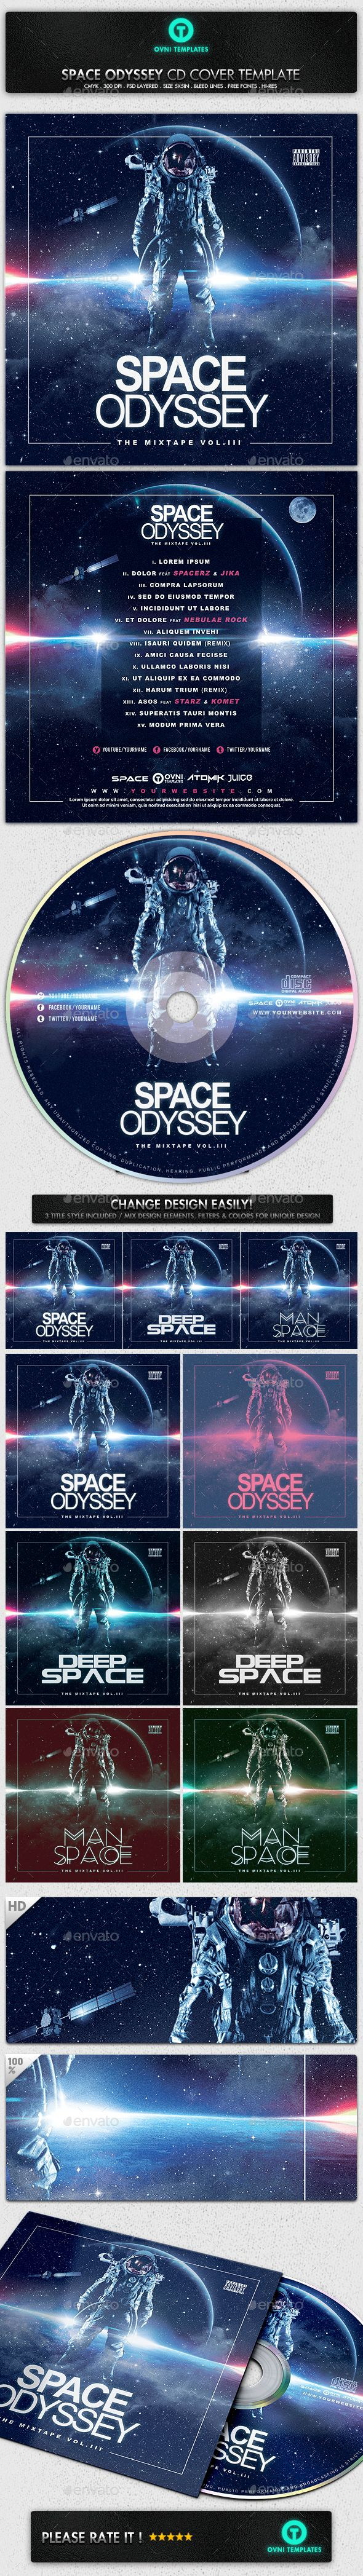 Space Galactic Astronaut CD Cover Template - PSD Template • Only available here ➝ http://graphicriver.net/item/space-galactic-astronaut-cd-cover-template/16886471?ref=pxcr